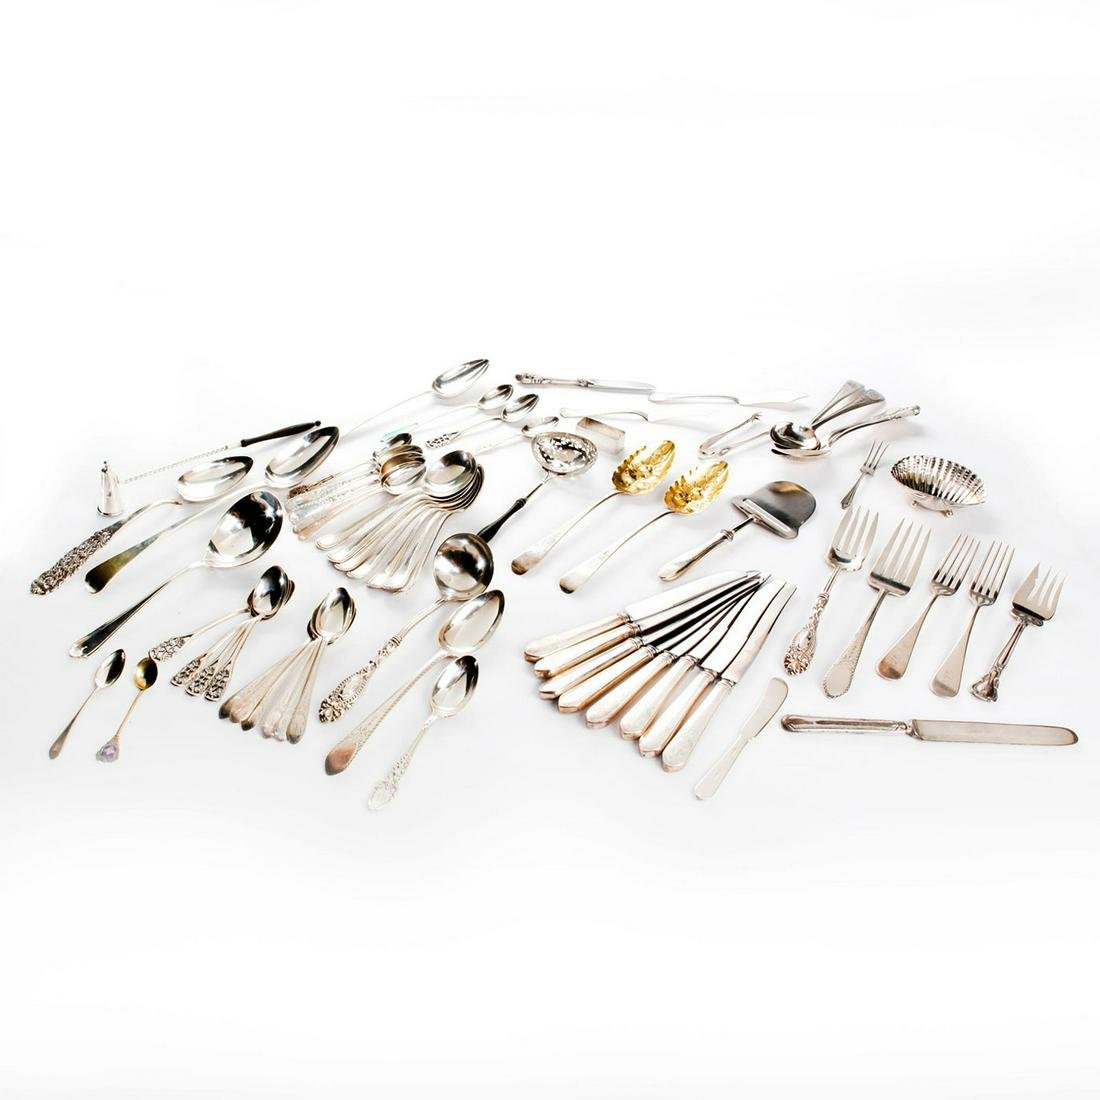 LARGE GROUP OF MISCELLANEOUS STERLING SILVER FLATWARE